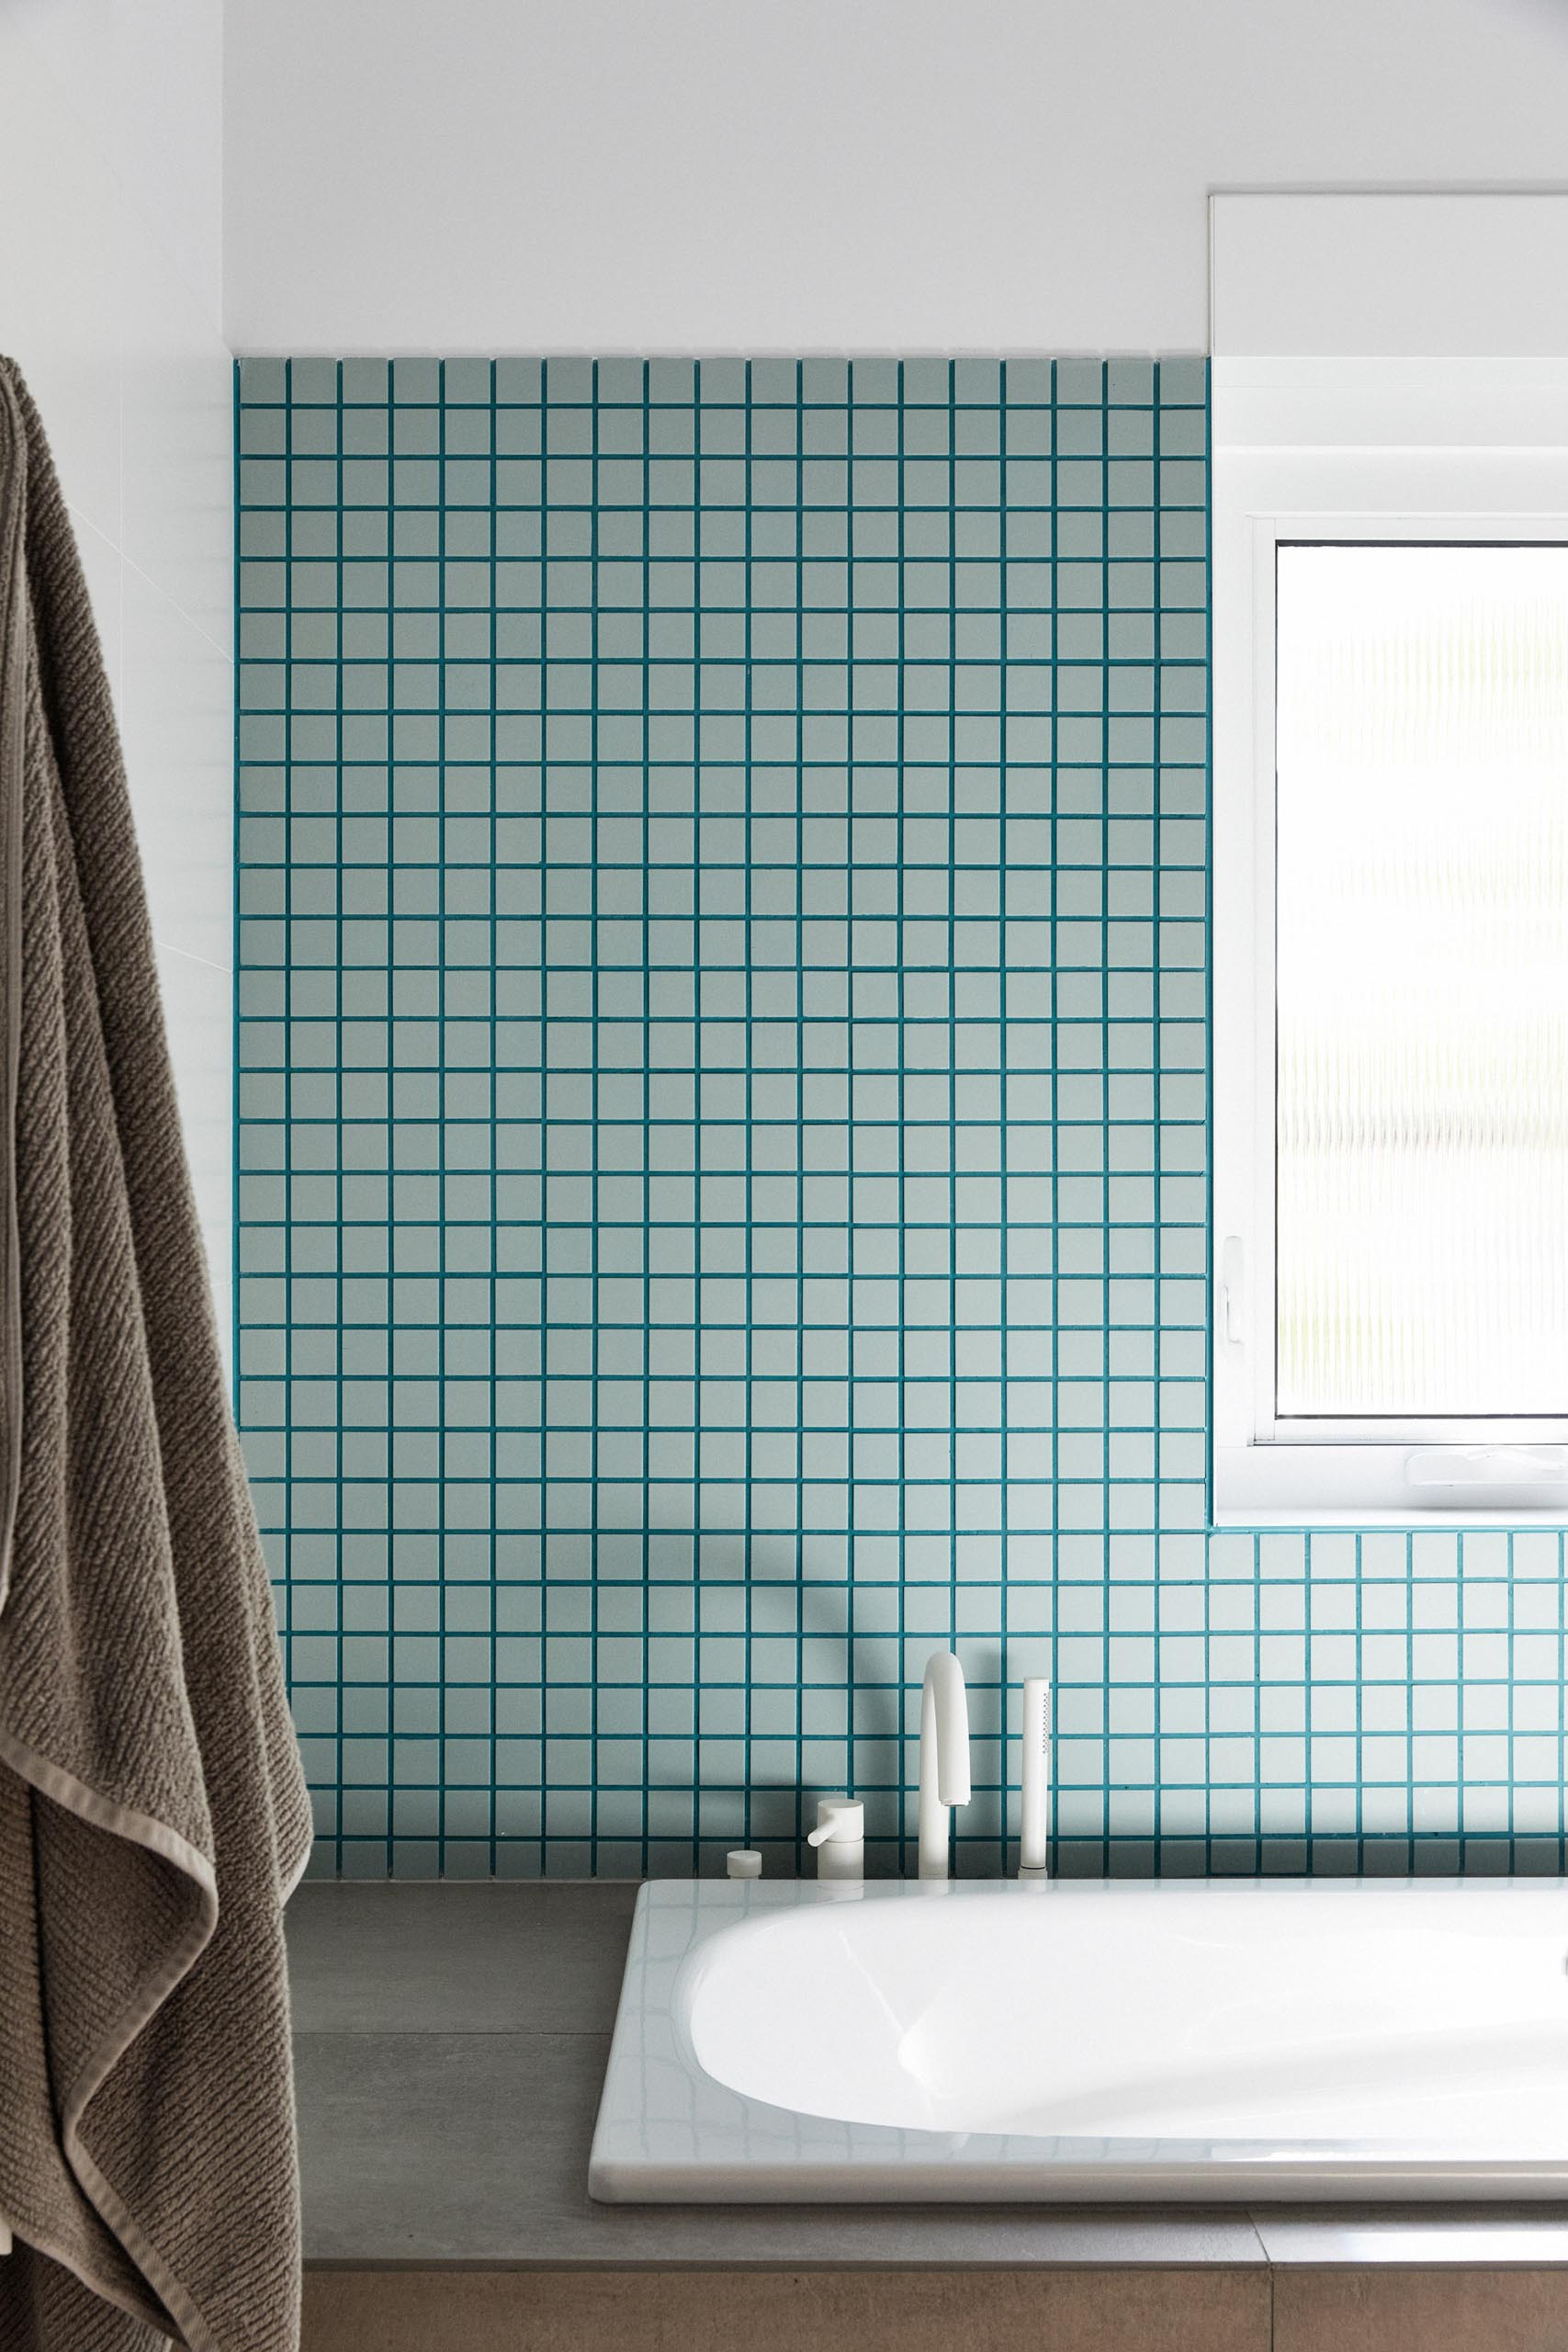 In this modern bathroom, white walls have been paired with soft blue/green tiles and matching grout for a contemporary look.